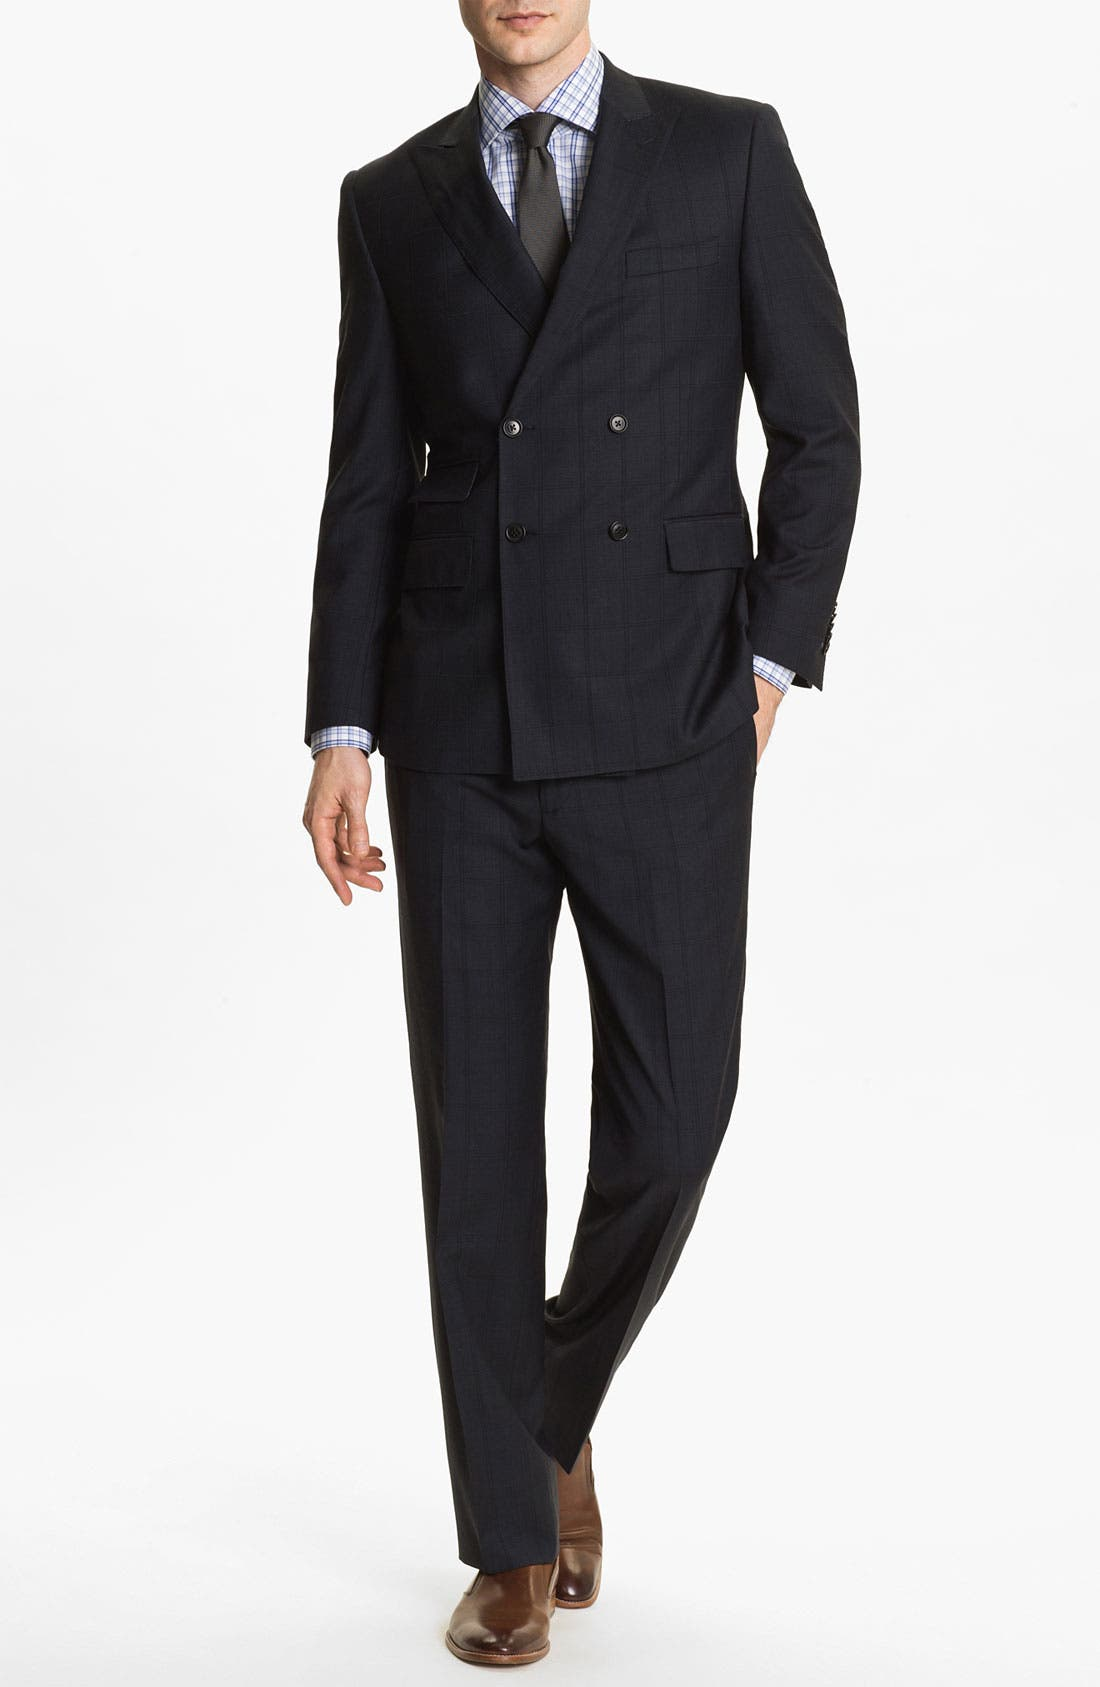 Alternate Image 1 Selected - English Laundry Trim Fit Double Breasted Suit (Online Only)